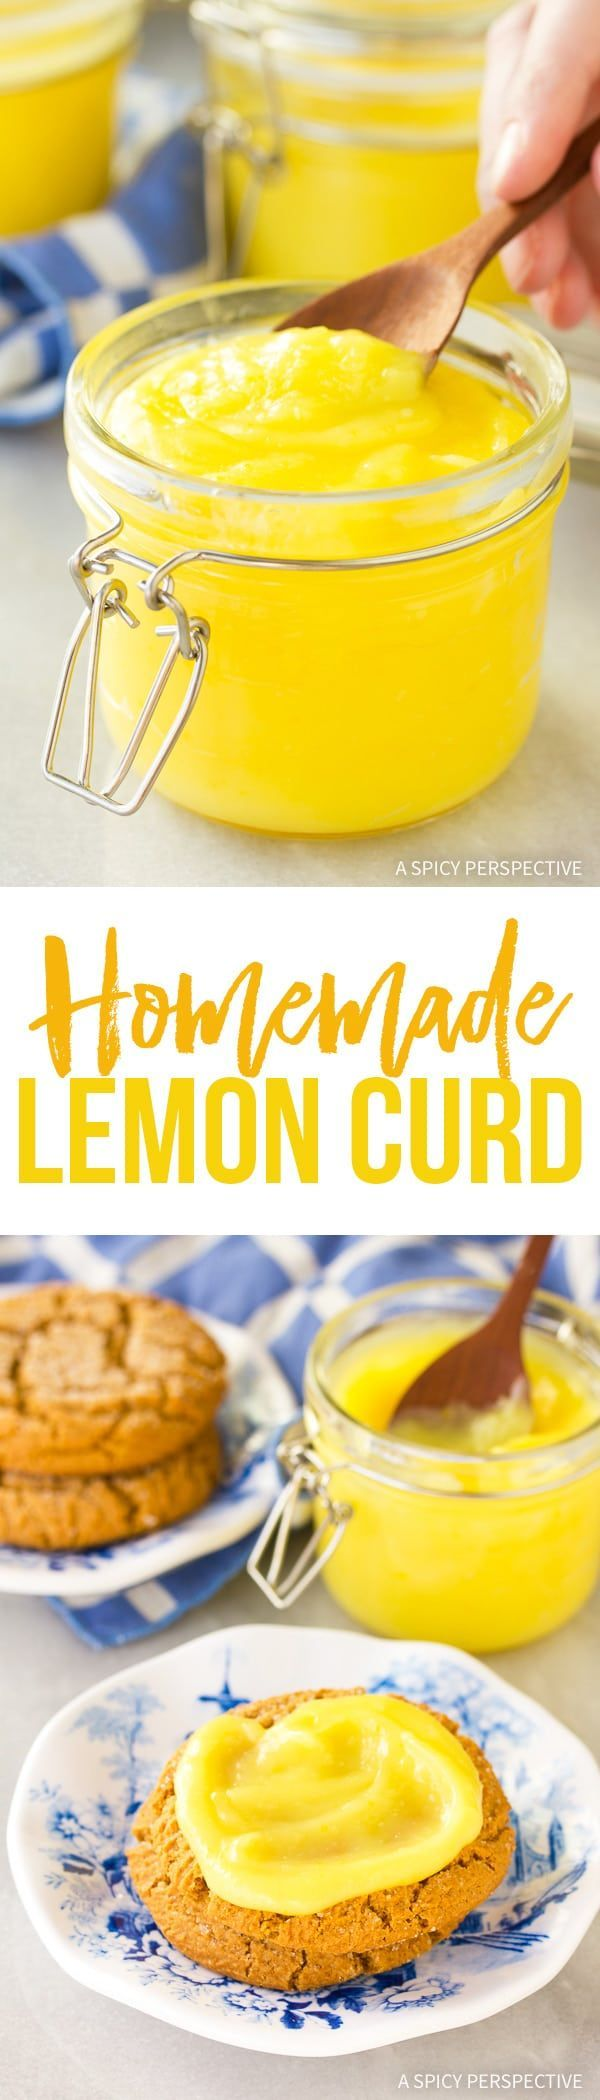 Perfect Homemade Lemon Curd Recipe - Silky zingy fresh lemon curd makes a marvelous topping for biscuits, toast, or cookies. So easy to make, you won't believe it! via @spicyperspectiv